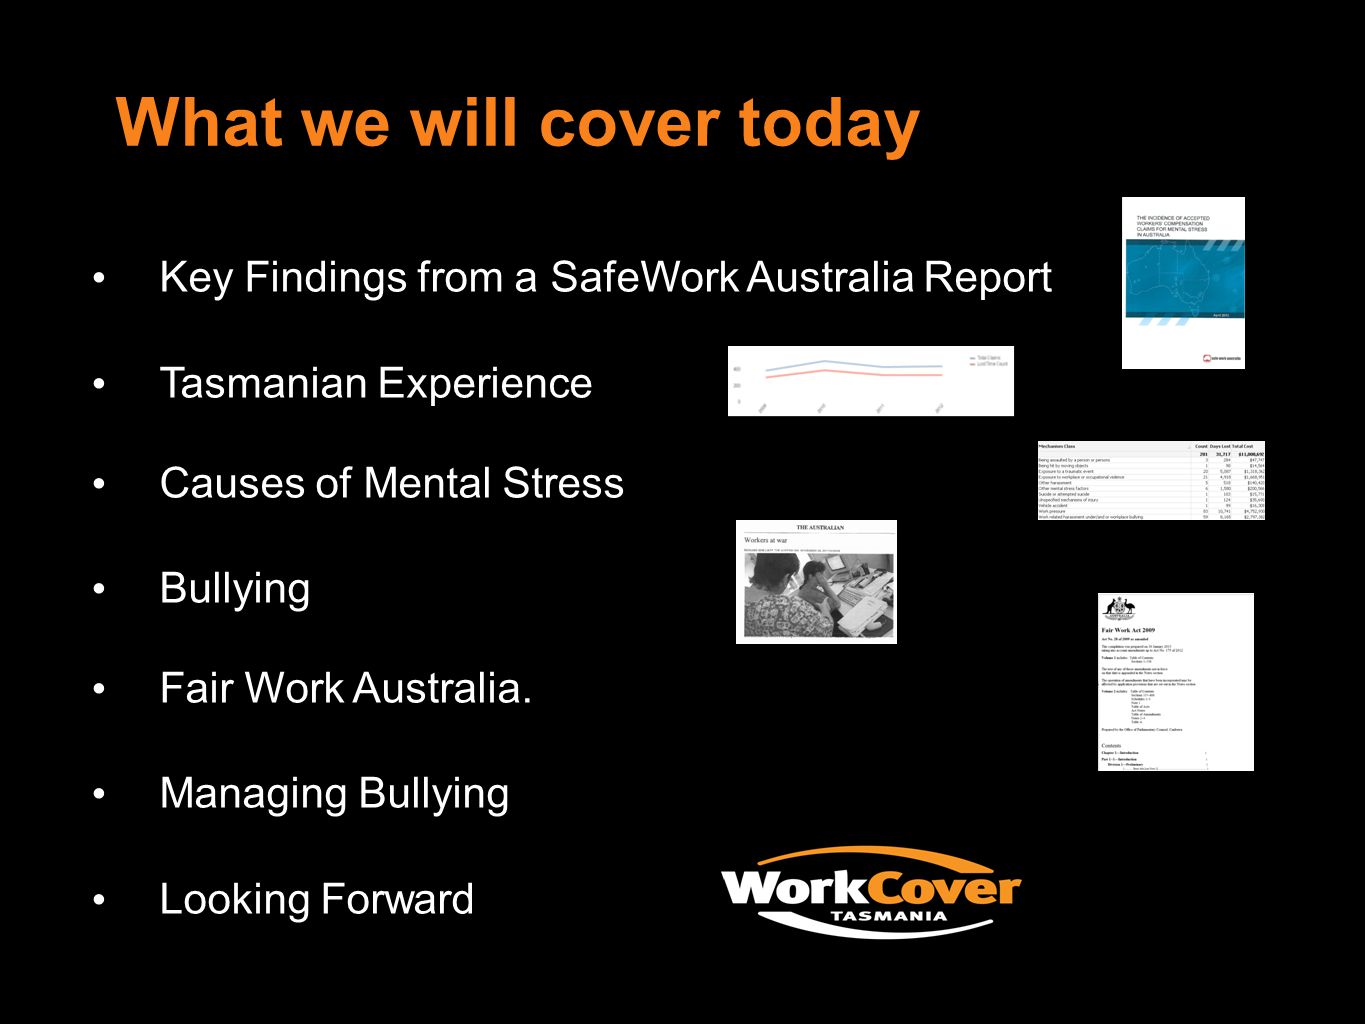 What we will cover today Key Findings from a SafeWork Australia Report Tasmanian Experience Causes of Mental Stress Bullying Fair Work Australia.